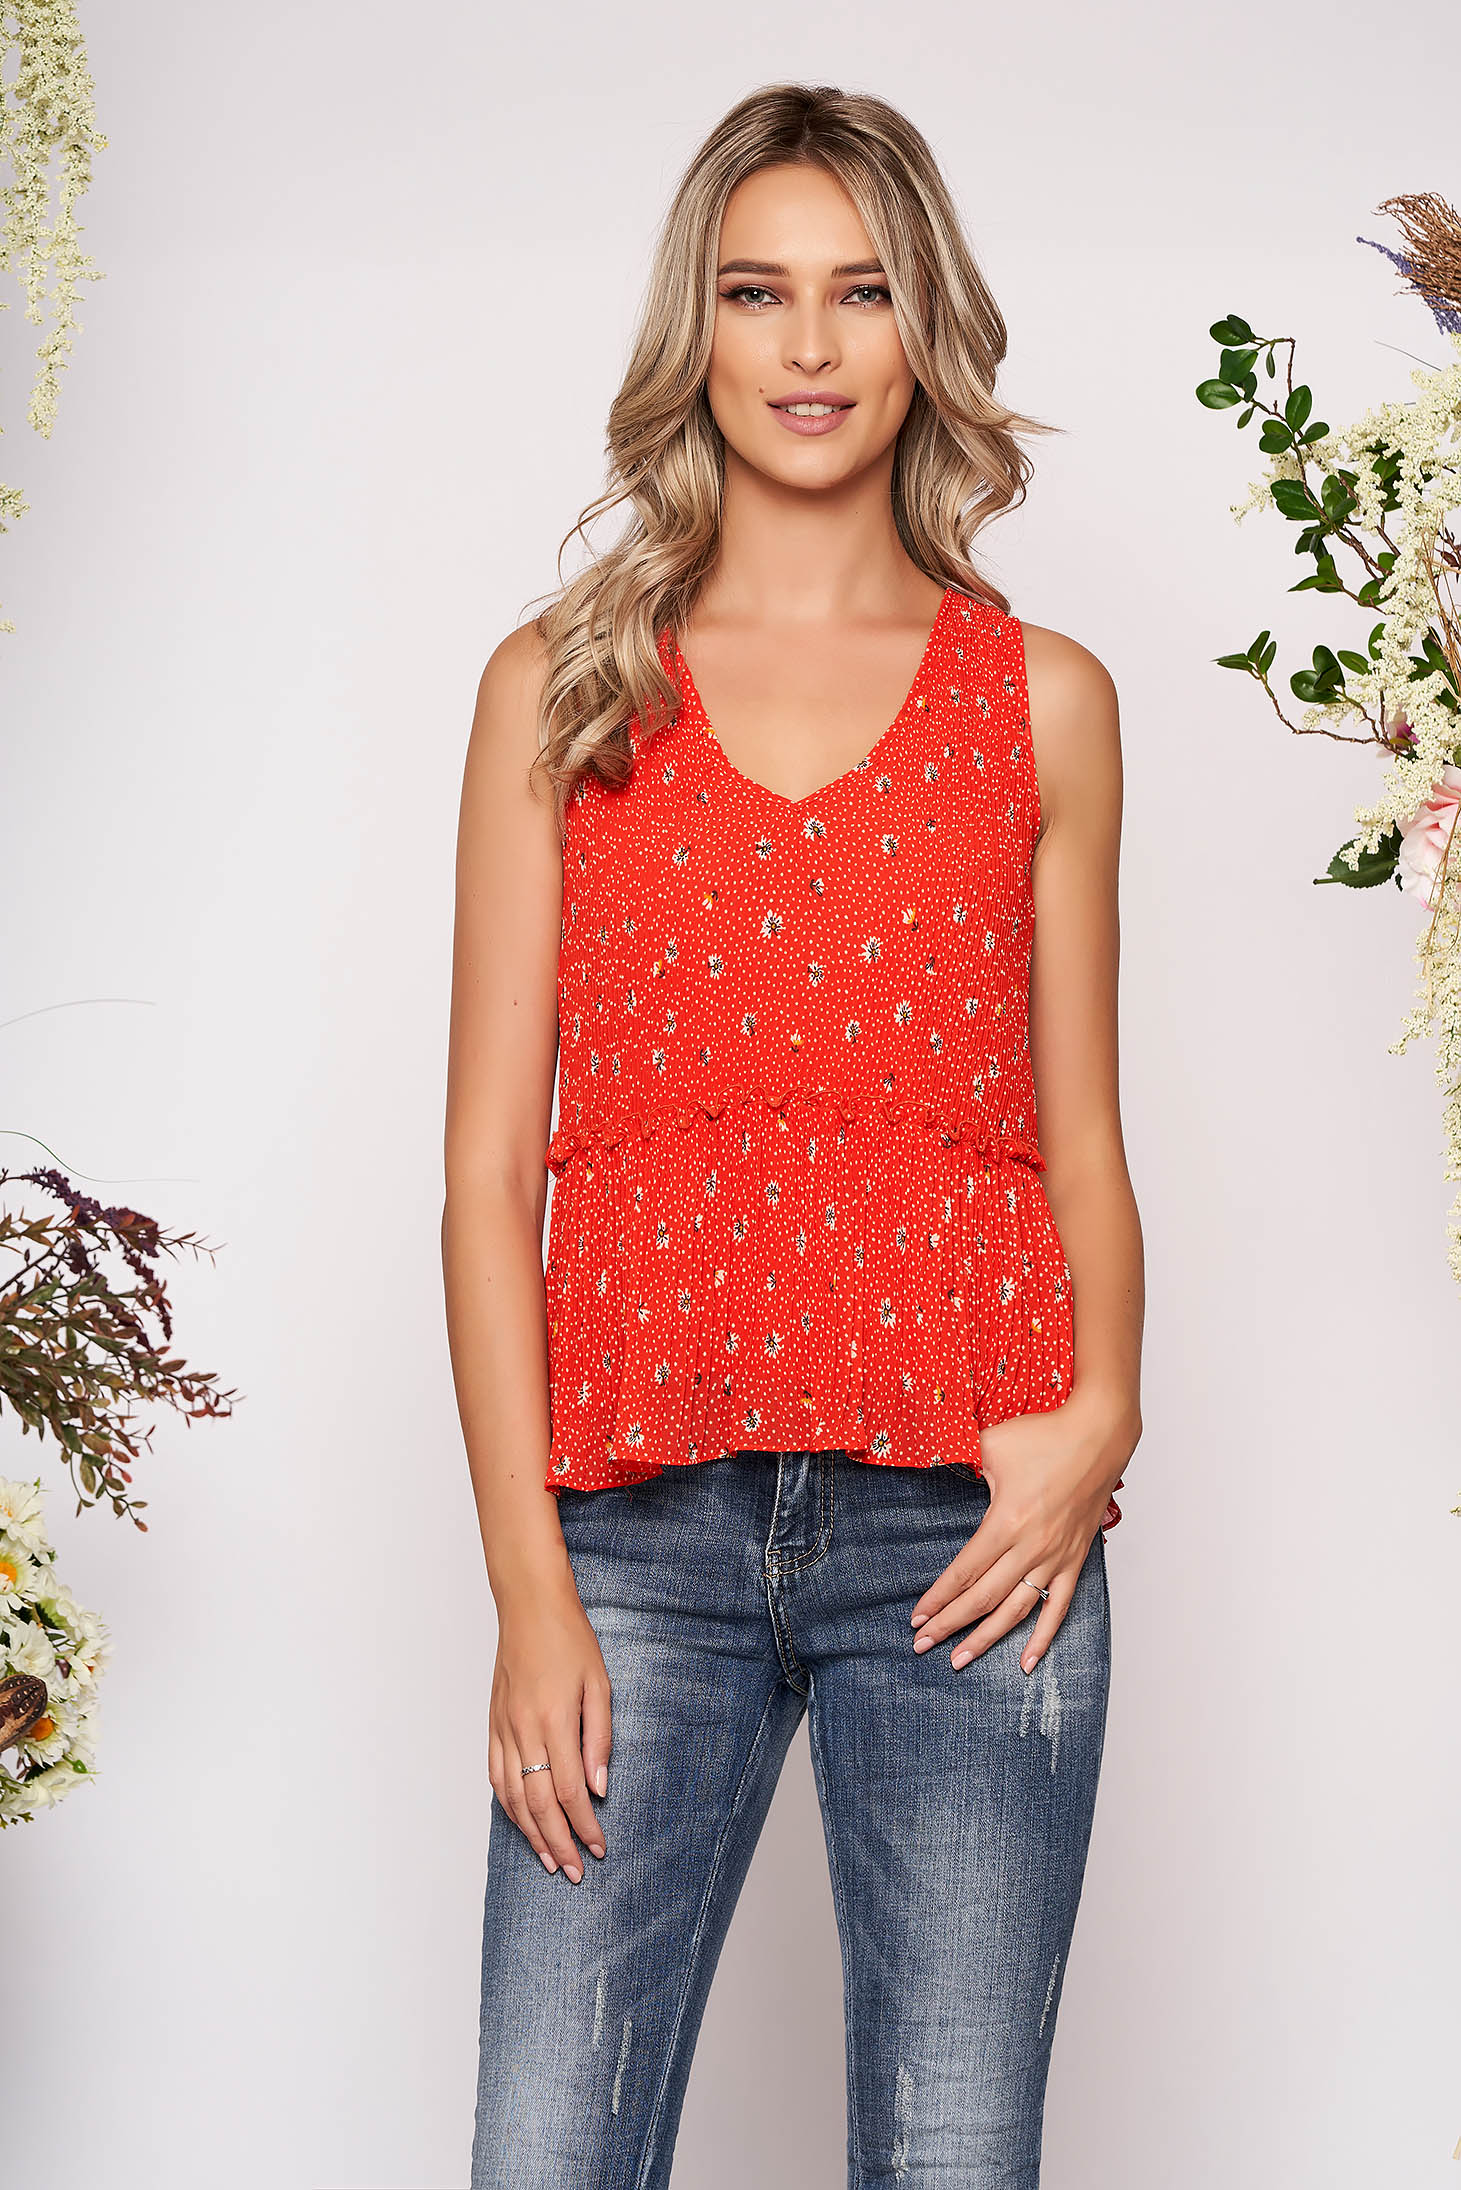 Red top shirt casual short cut flared dots print sleeveless